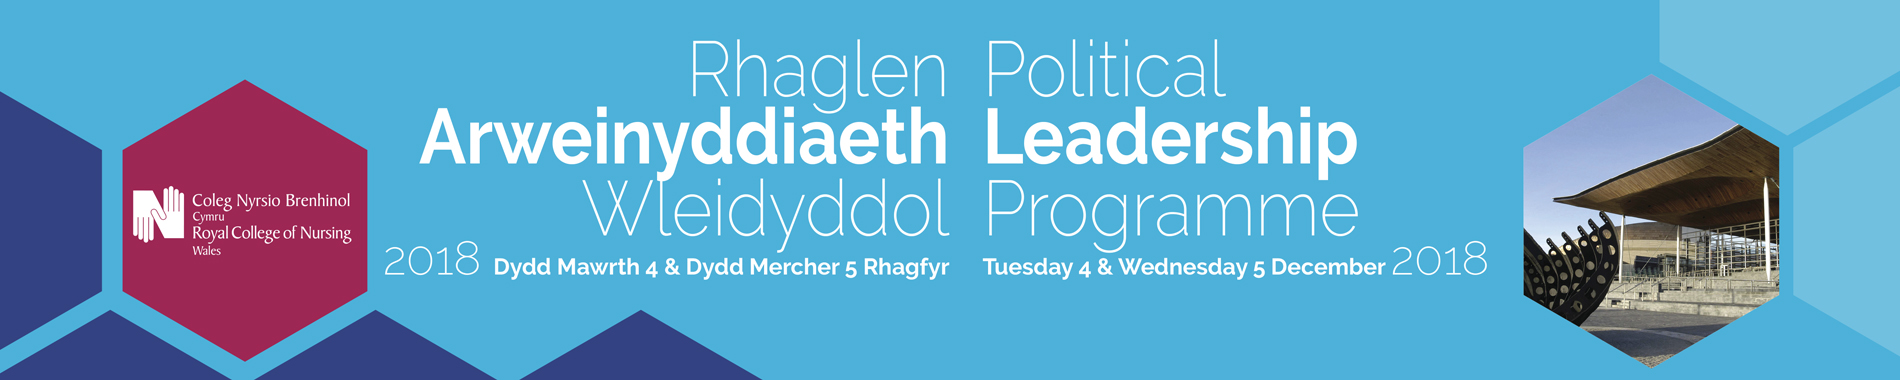 Political Leadership Programme Wales Banner